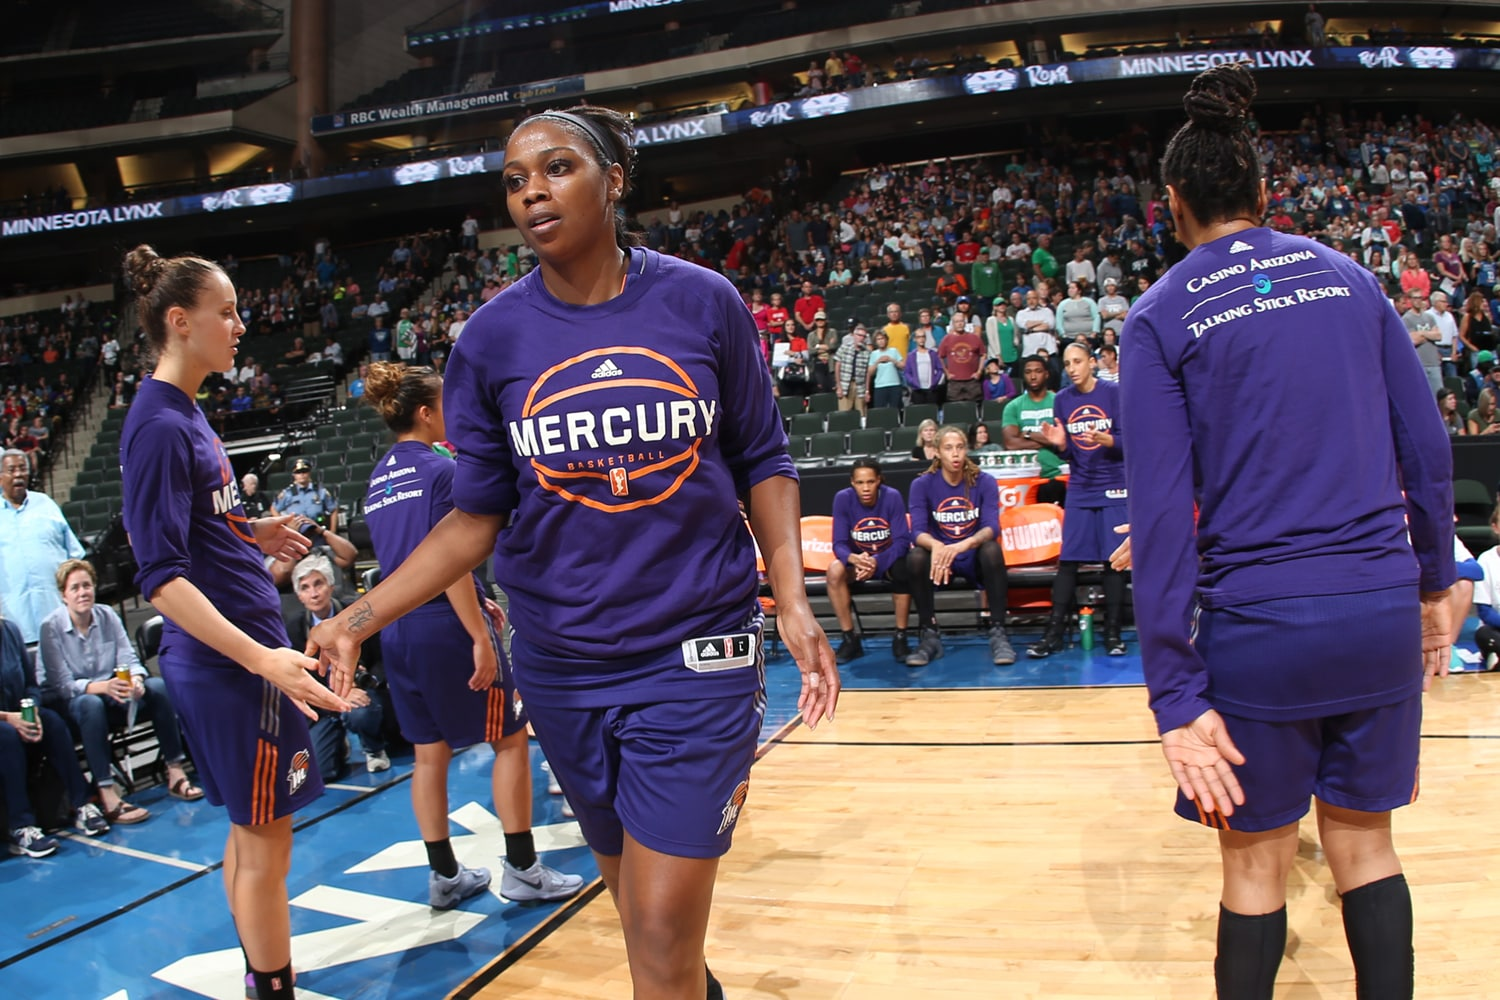 Camille Little introduced for Phoenix Mercury v Minnesota Lynx